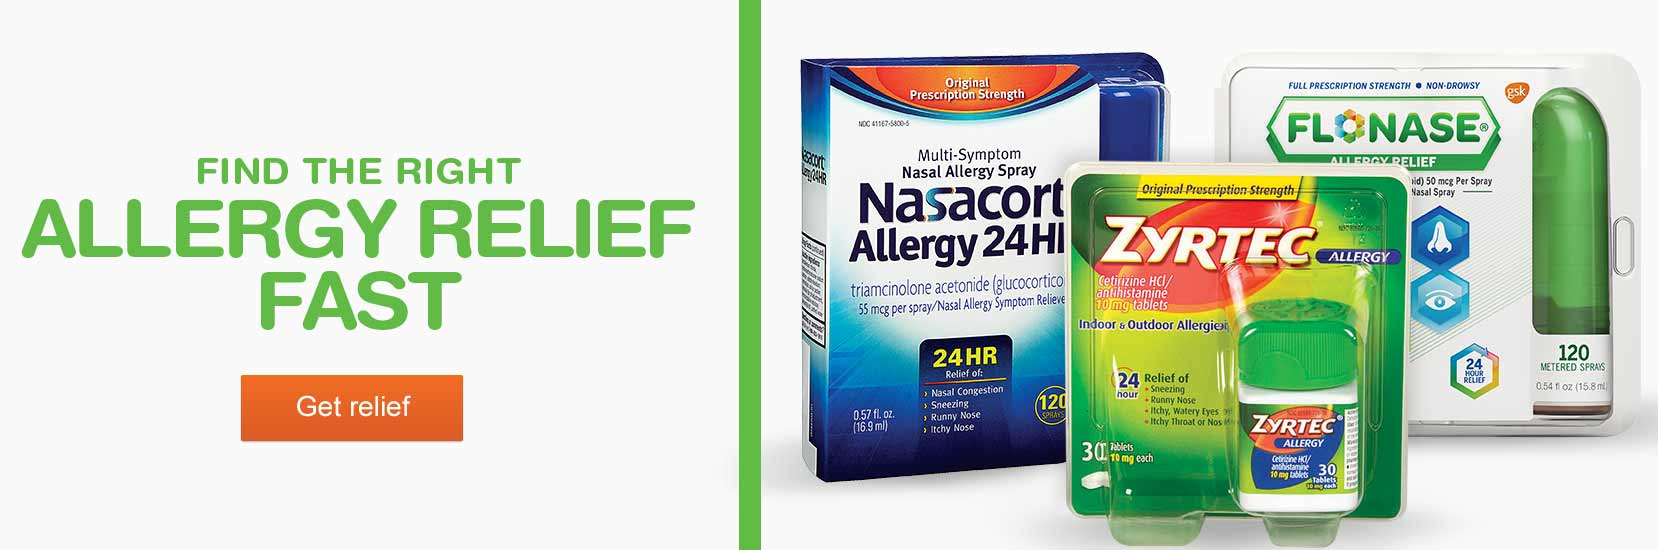 Find the right allergy relief fast. Get relief.